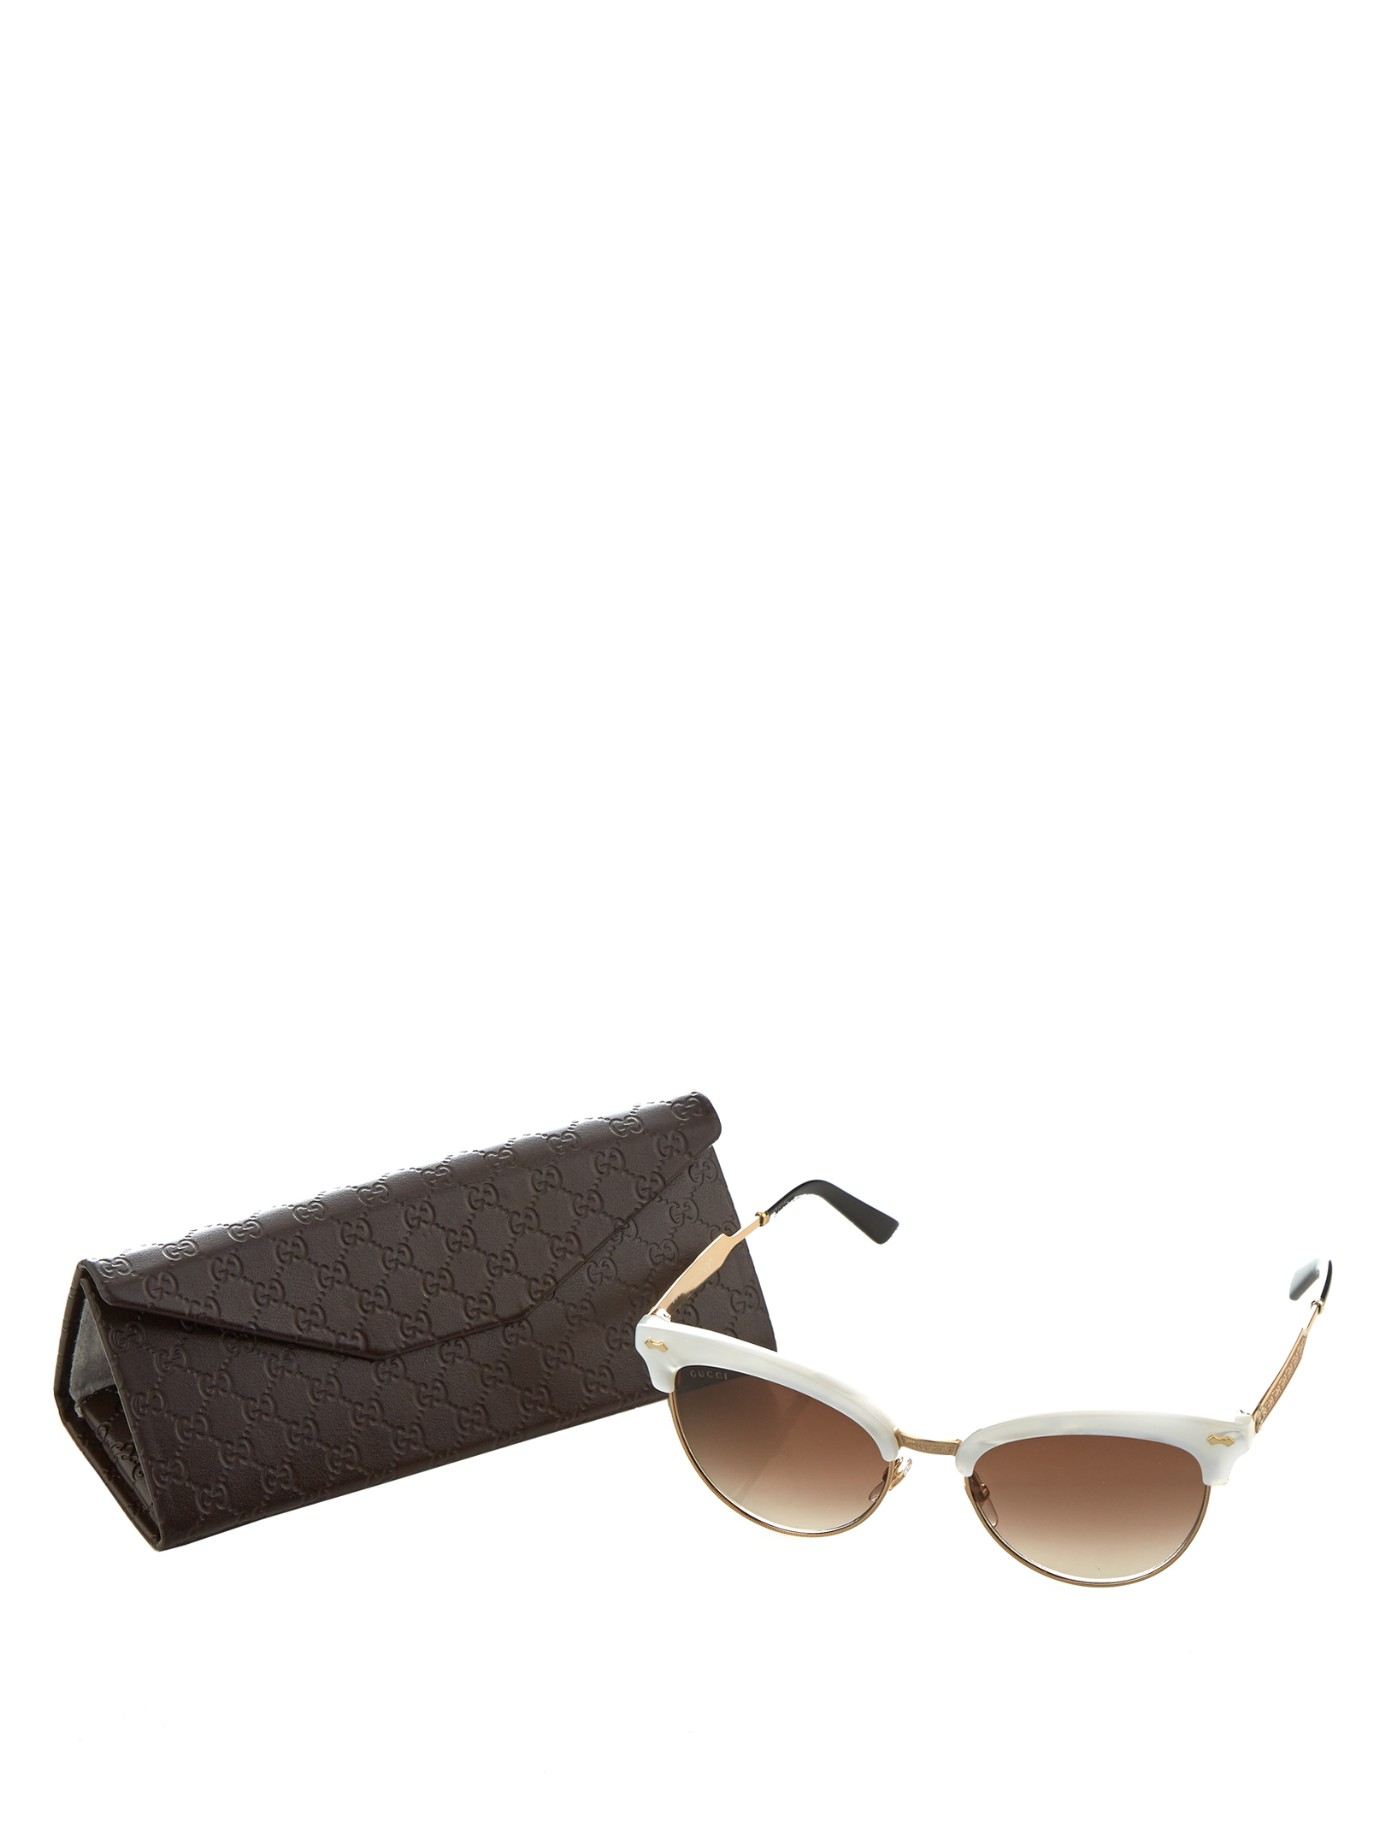 Gucci Glasses Half Frame : Gucci Cat-eye Half-frame Sunglasses Lyst